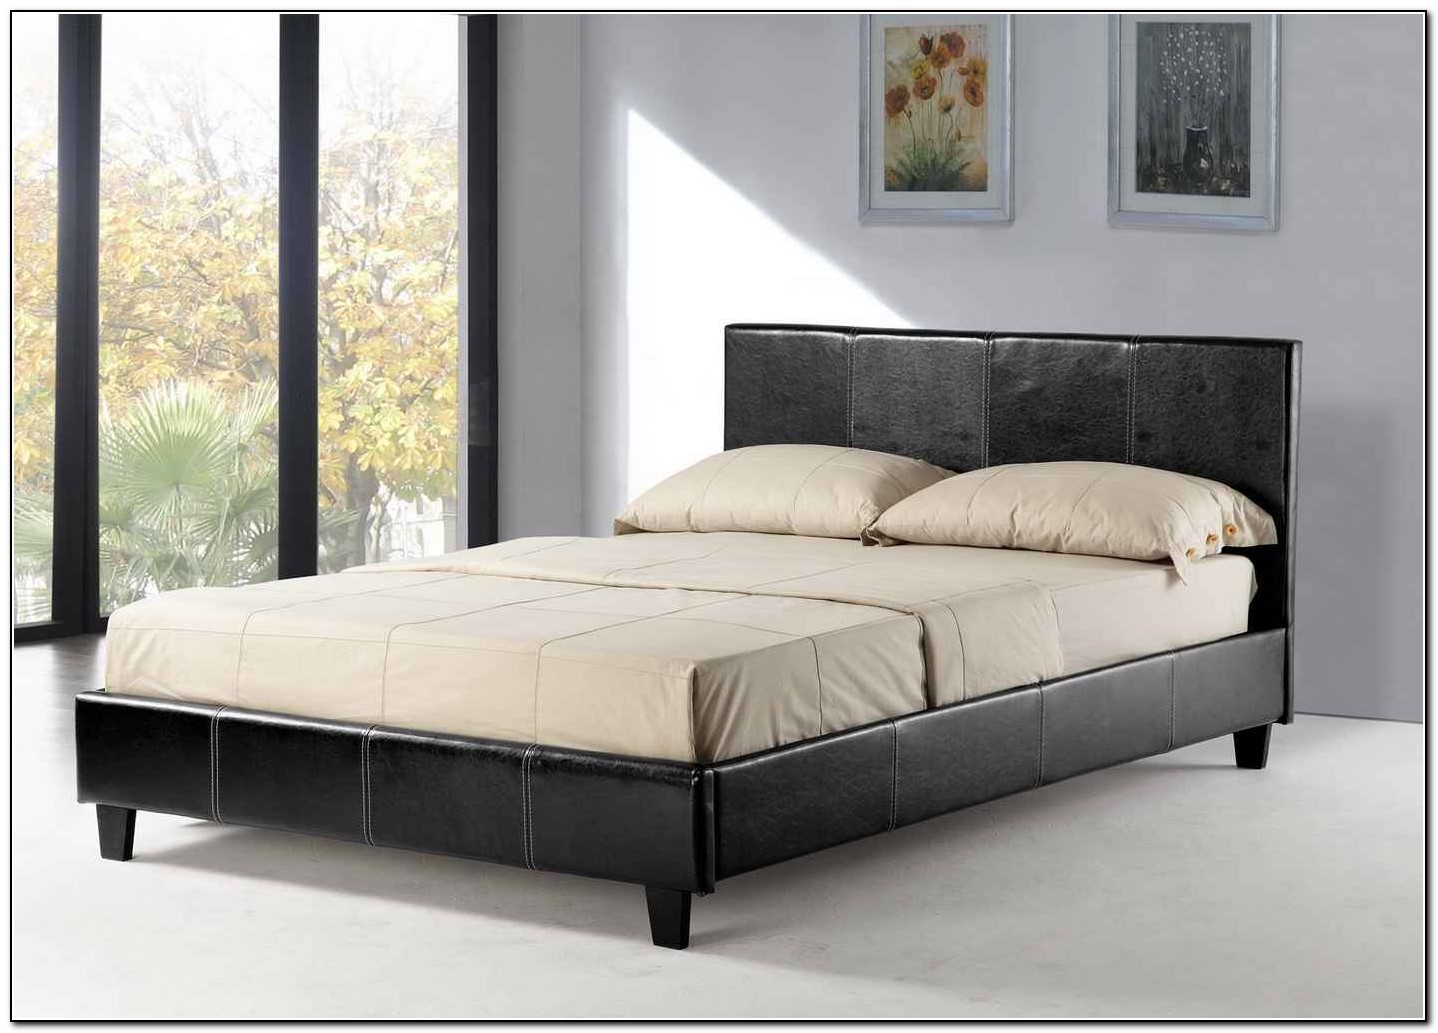 Cheap Platform Beds Queen Size